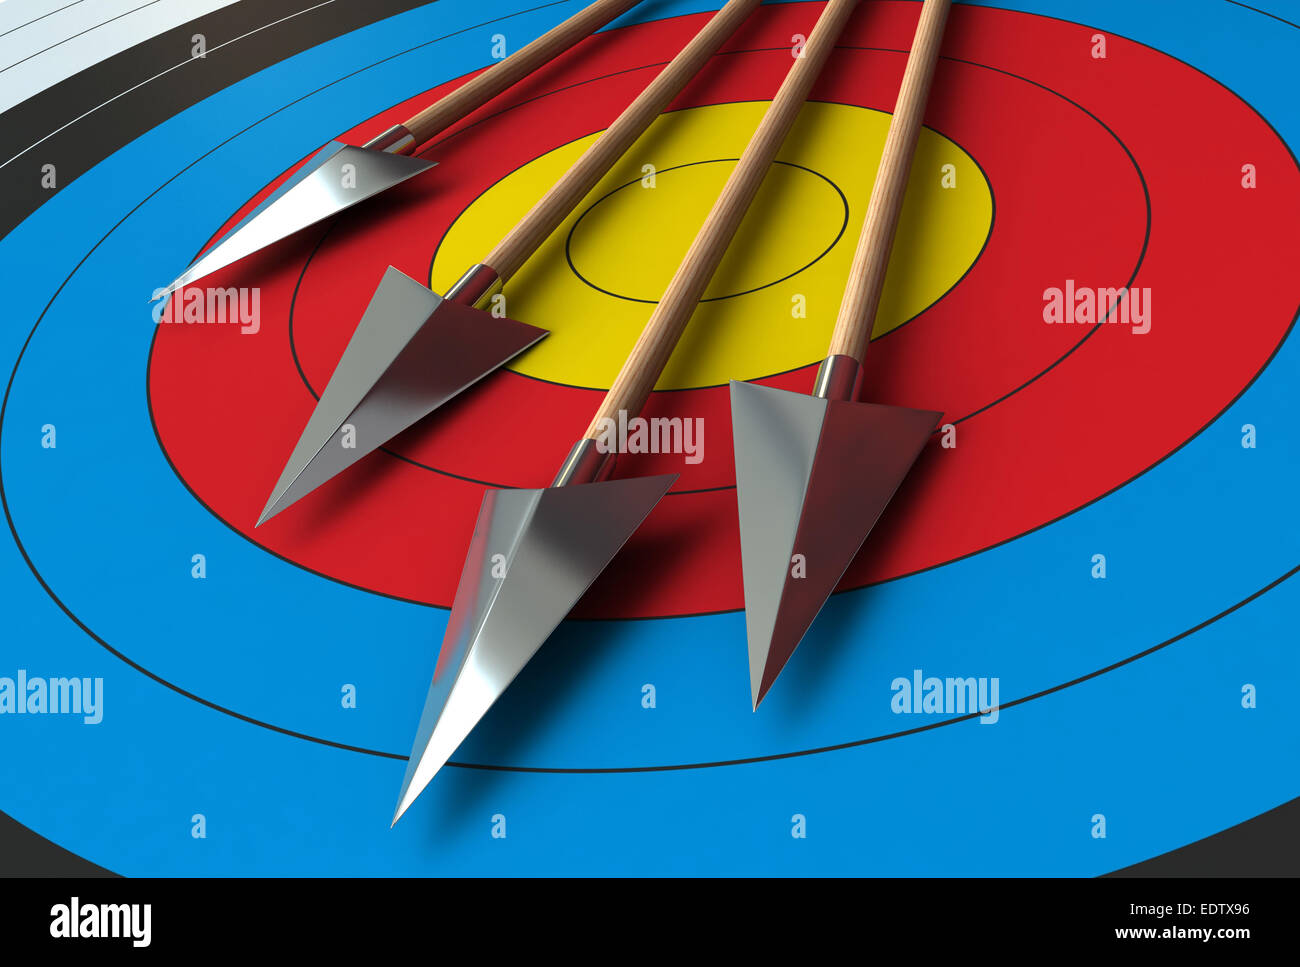 3d render of arrows over target background - Stock Image